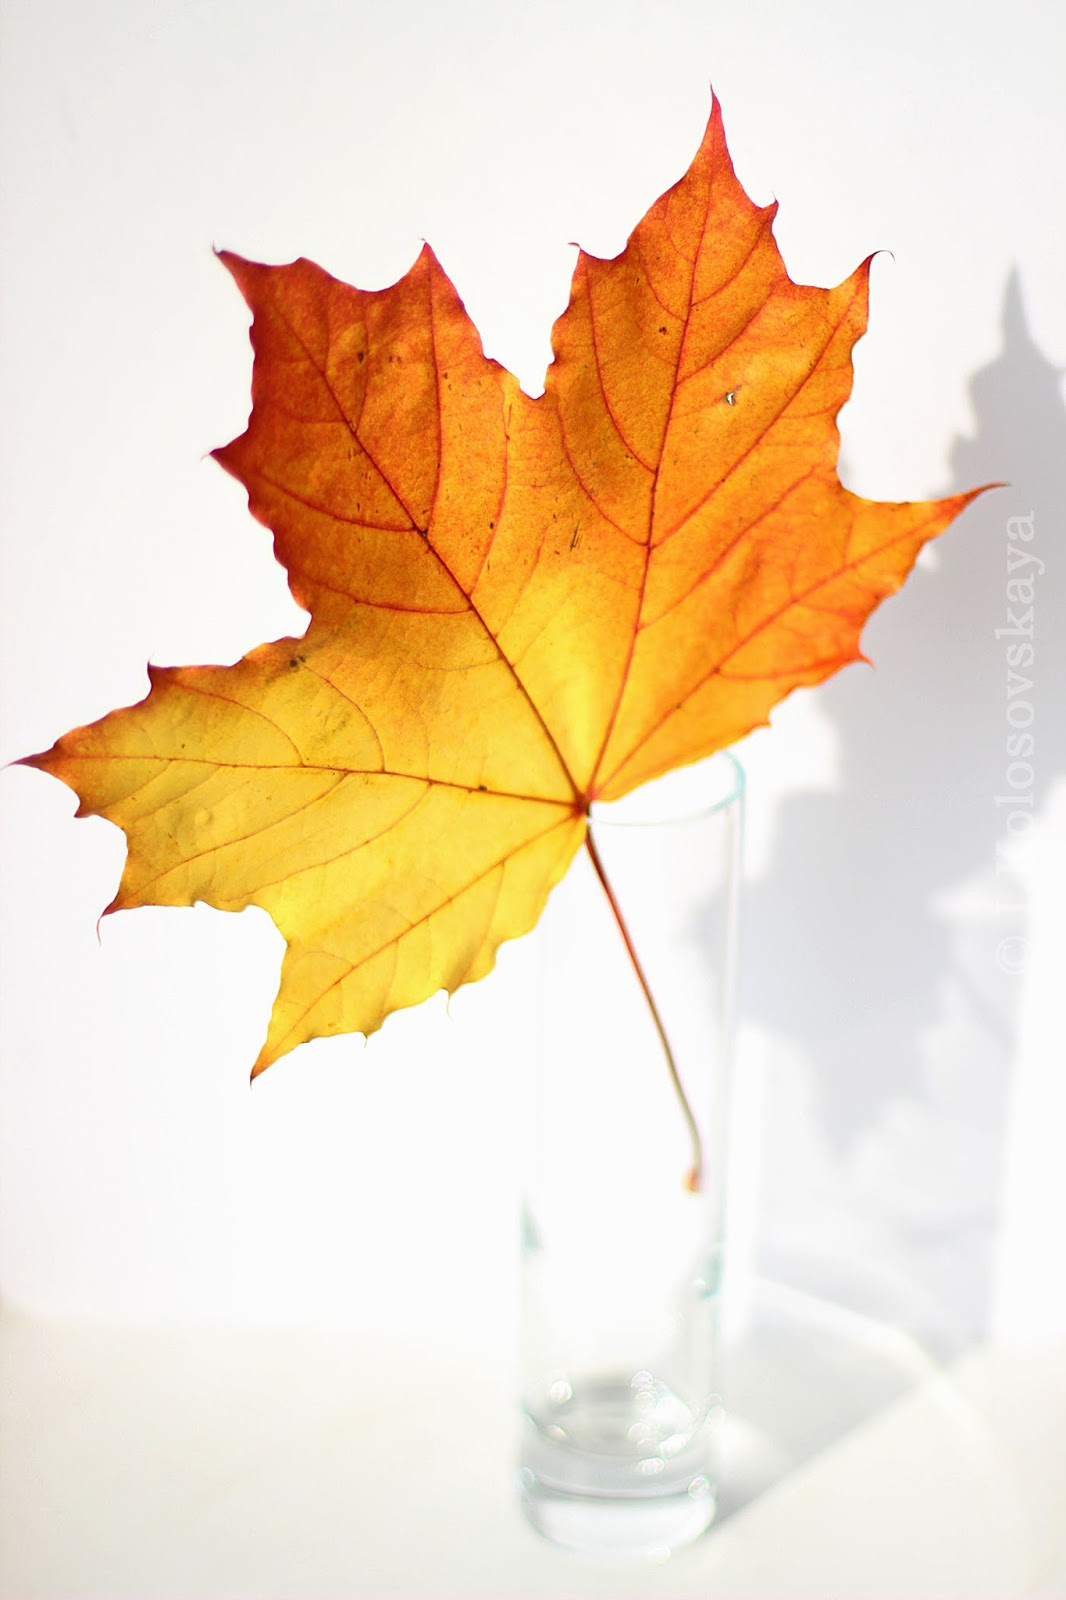 autumn leaves descriptive essay Model essay: descriptive a fall day the maple tree in my backyard with arcing branches and bright, red and orange leaves is something to see—especially in the fall.